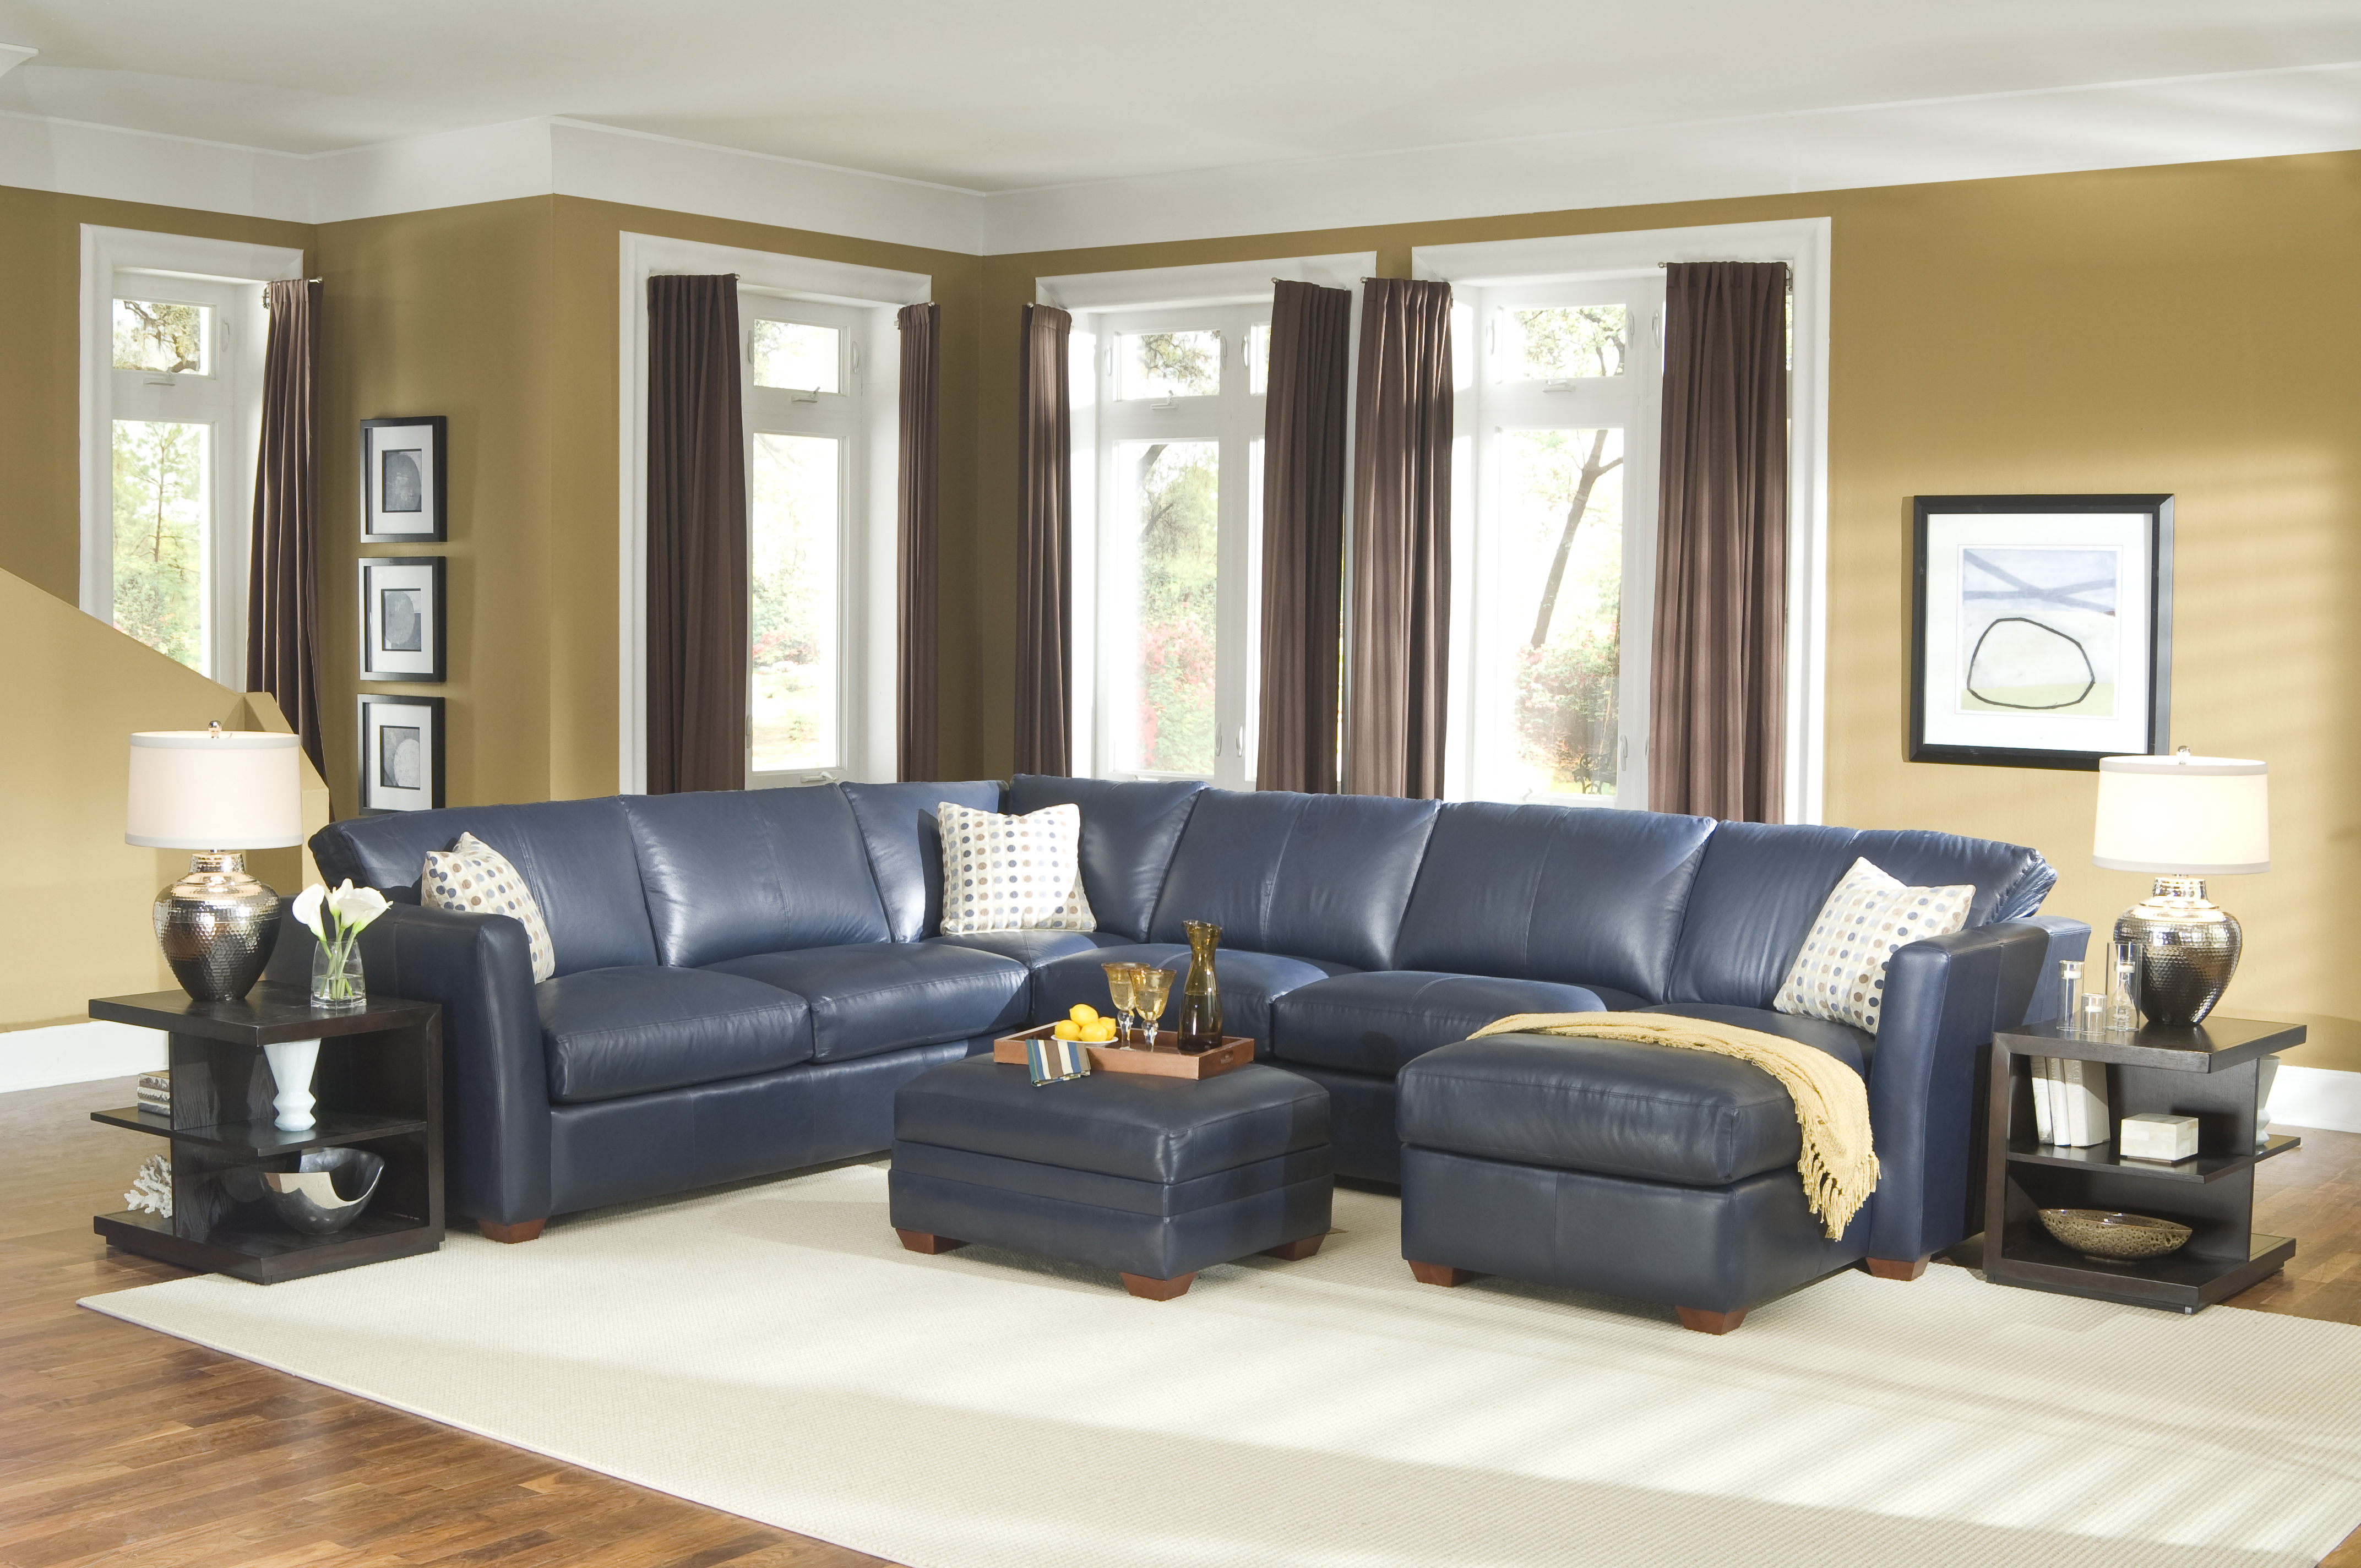 Luxury Navy Blue Sectional Sofa 12 With Additional Office Sofa Ideas with Navy Blue Sectional Sofa